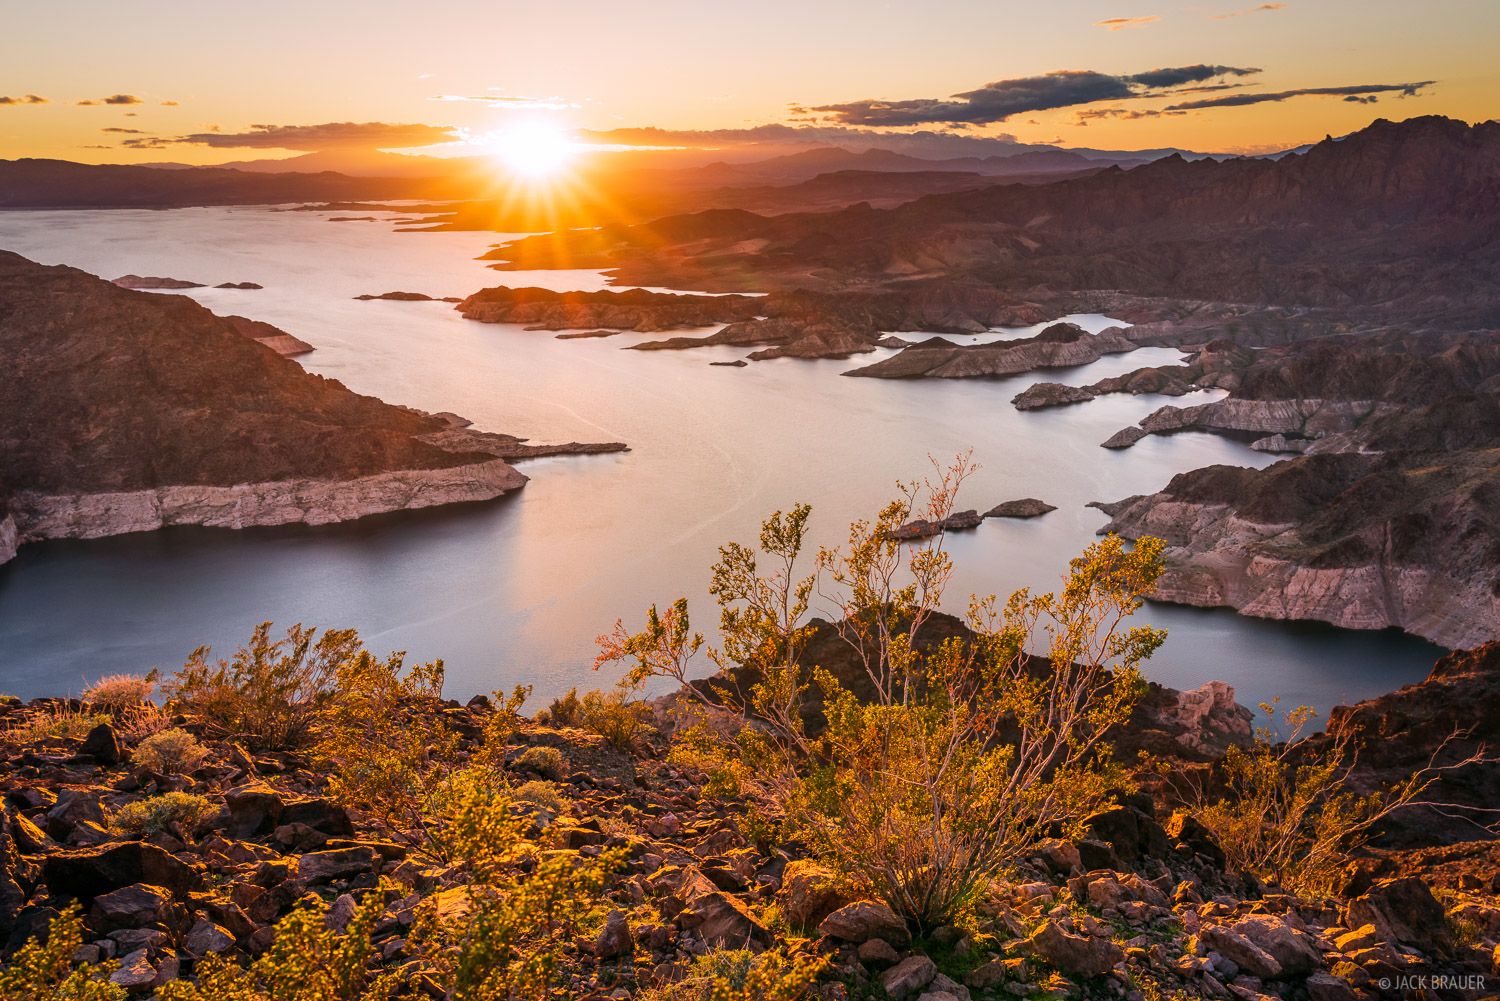 Sunset over Lake Mead reservoir.